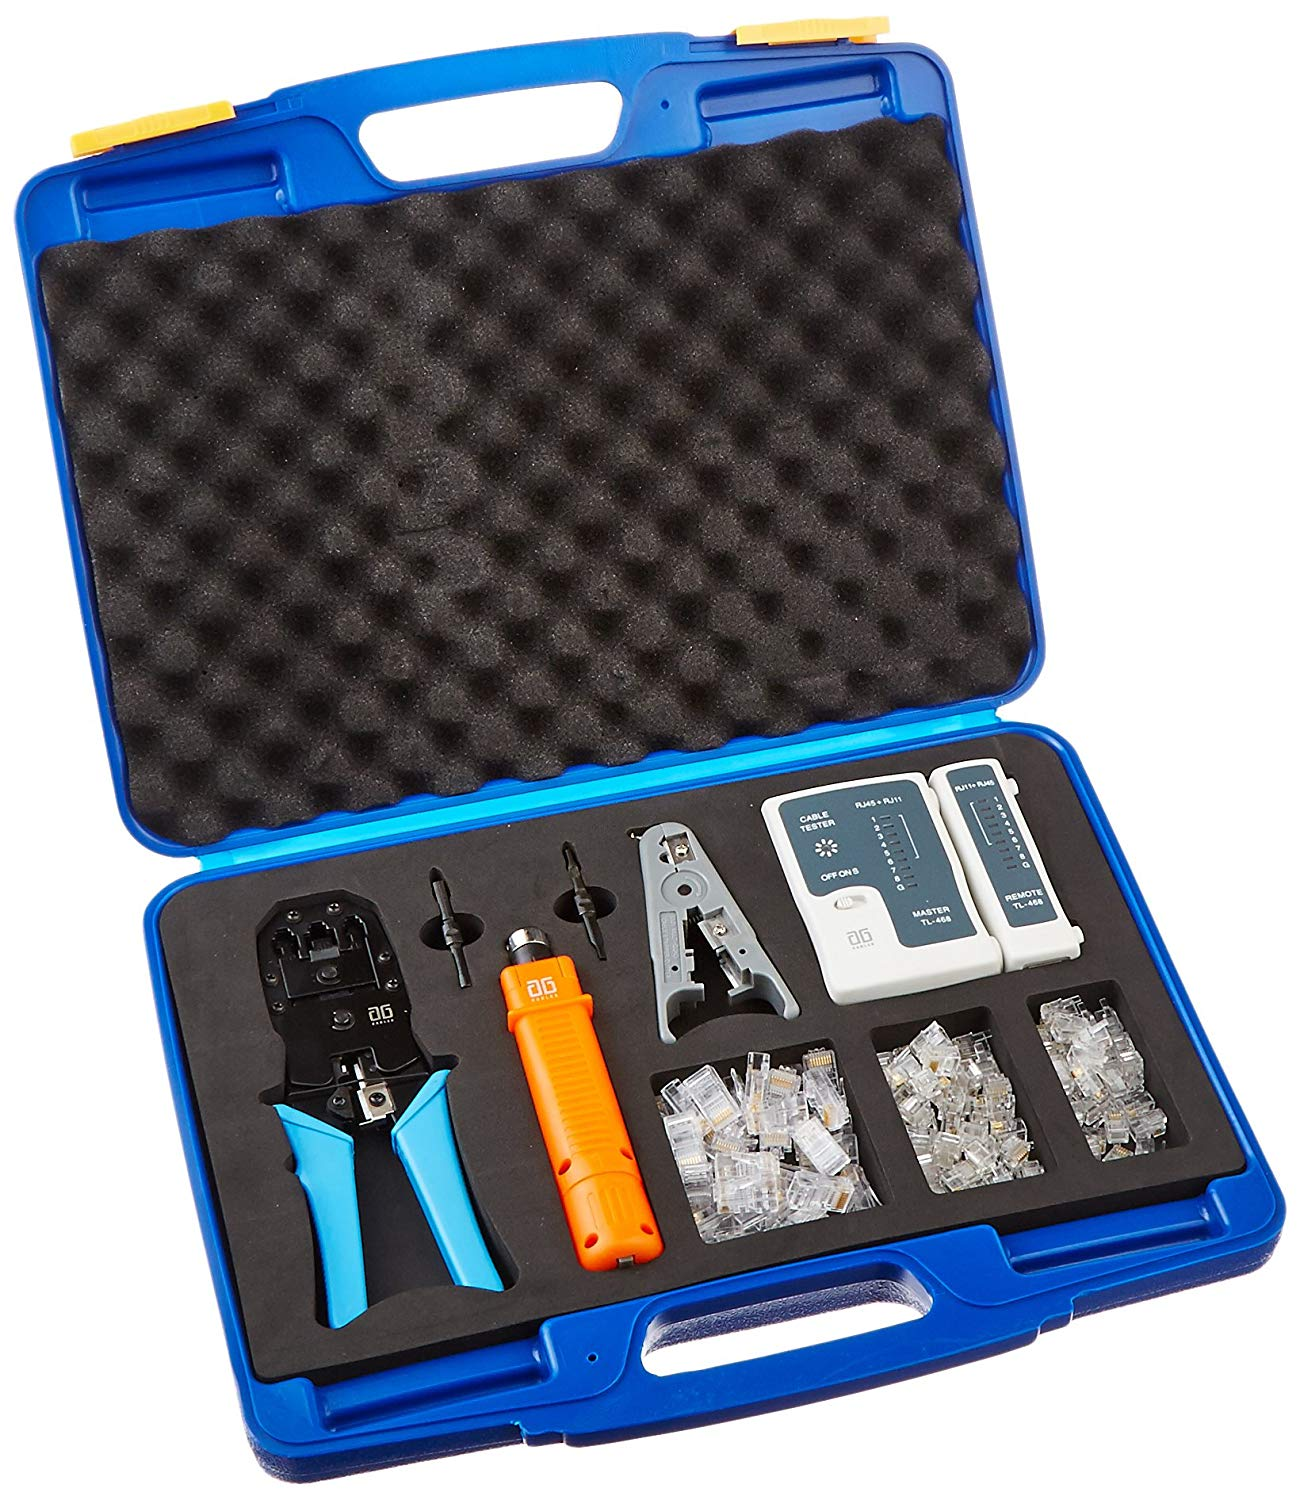 AG Cables AGC-K315A Professional Networking Tool Kit with Cable Tester, Punch Down Tool, Cable Stripper